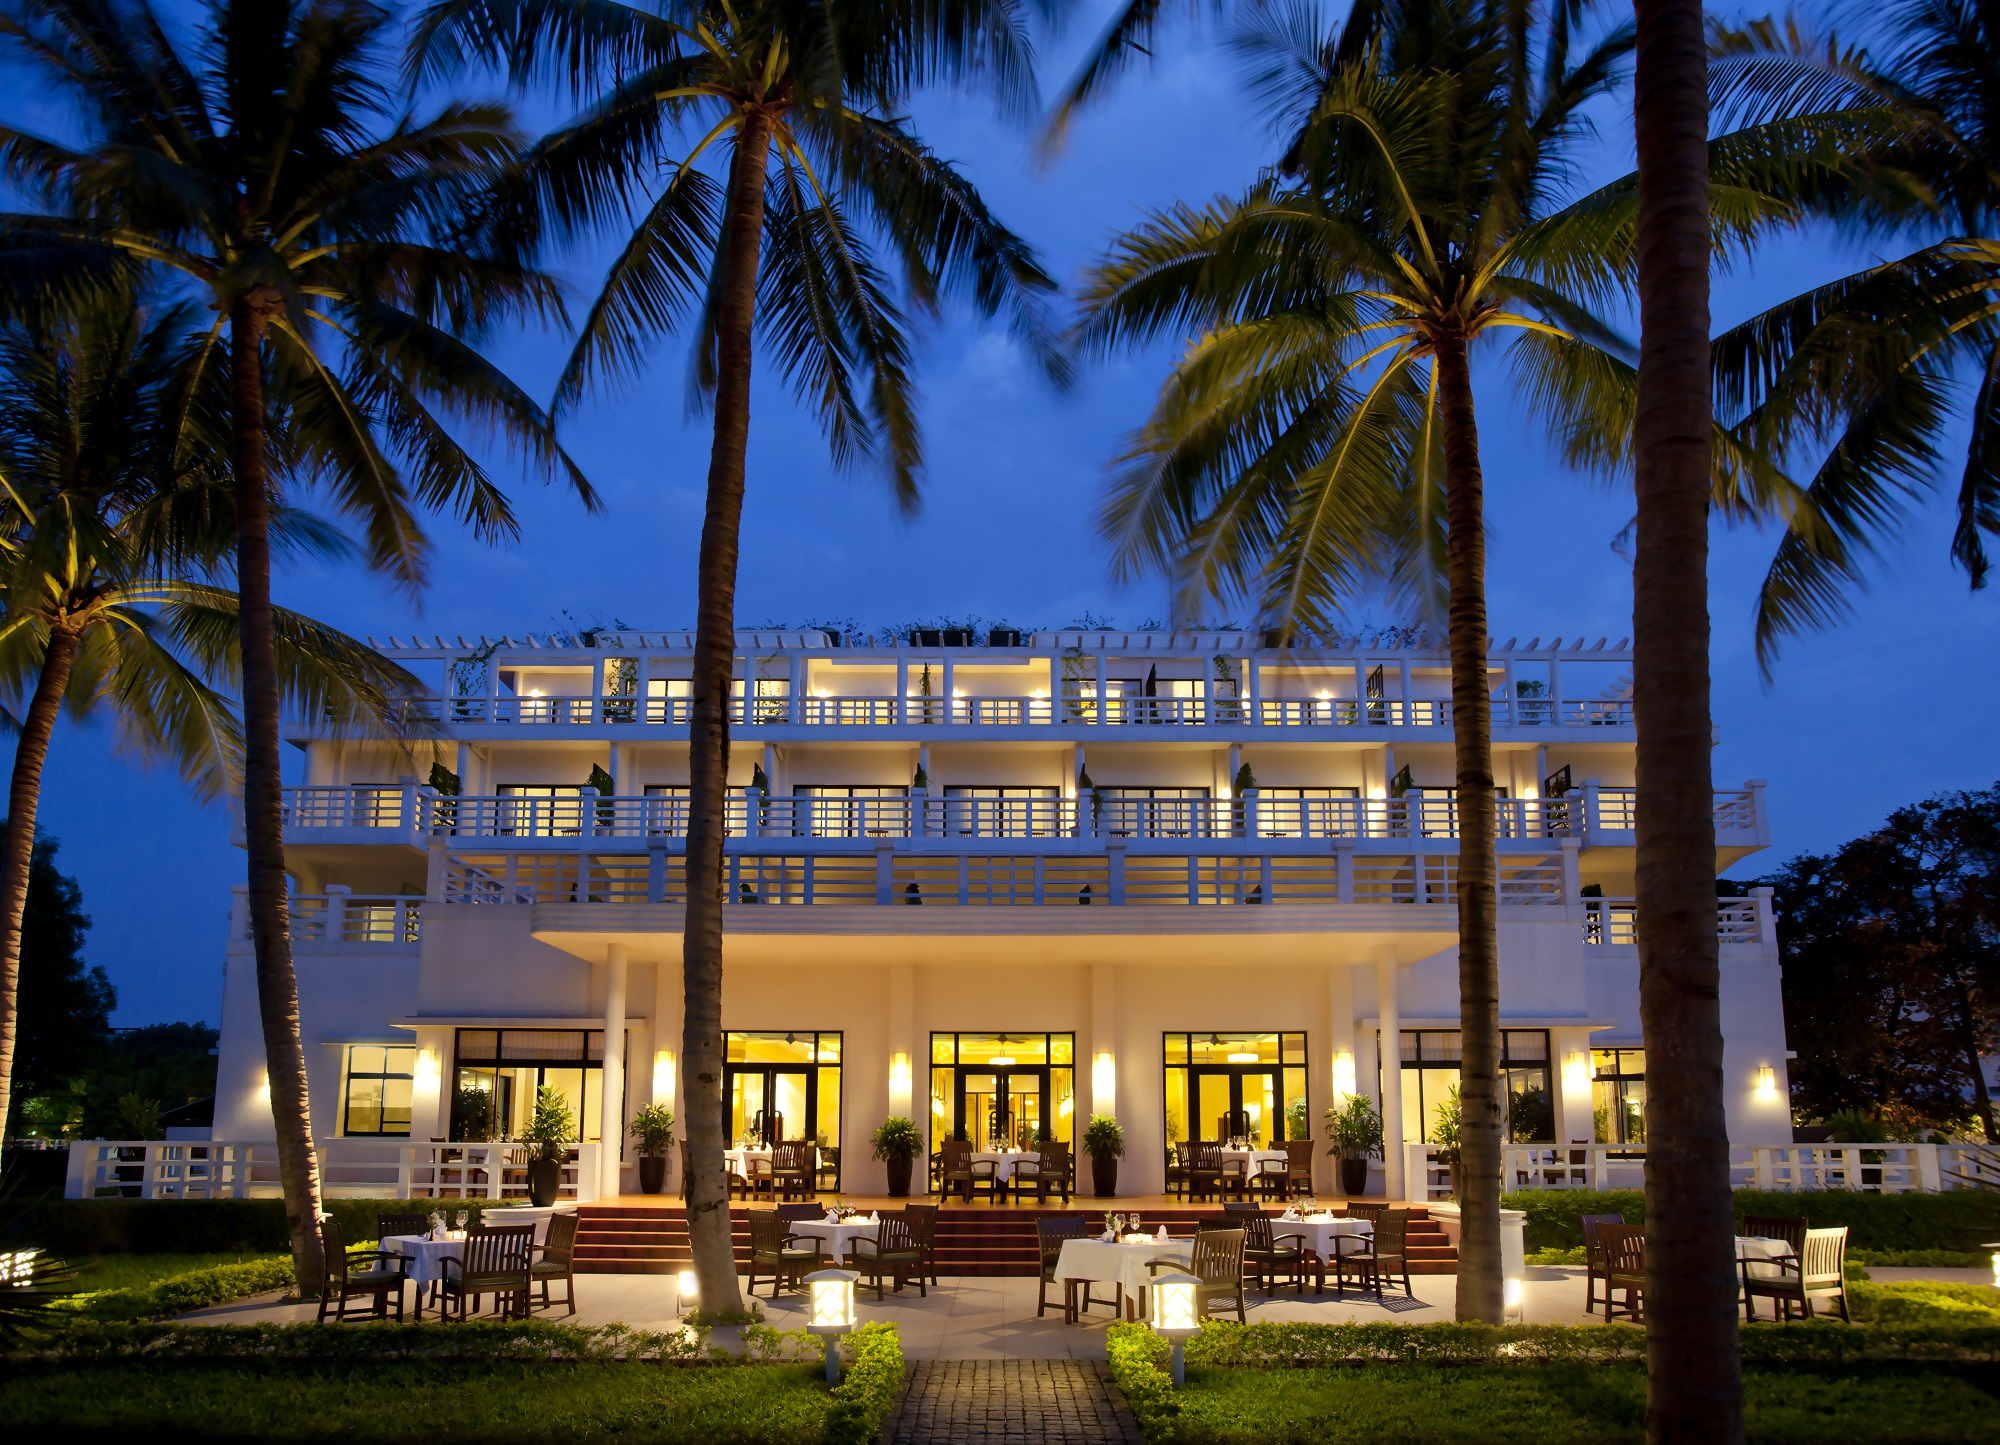 Weekend at La Residence Hotel & Spa in Hue, Vietnam